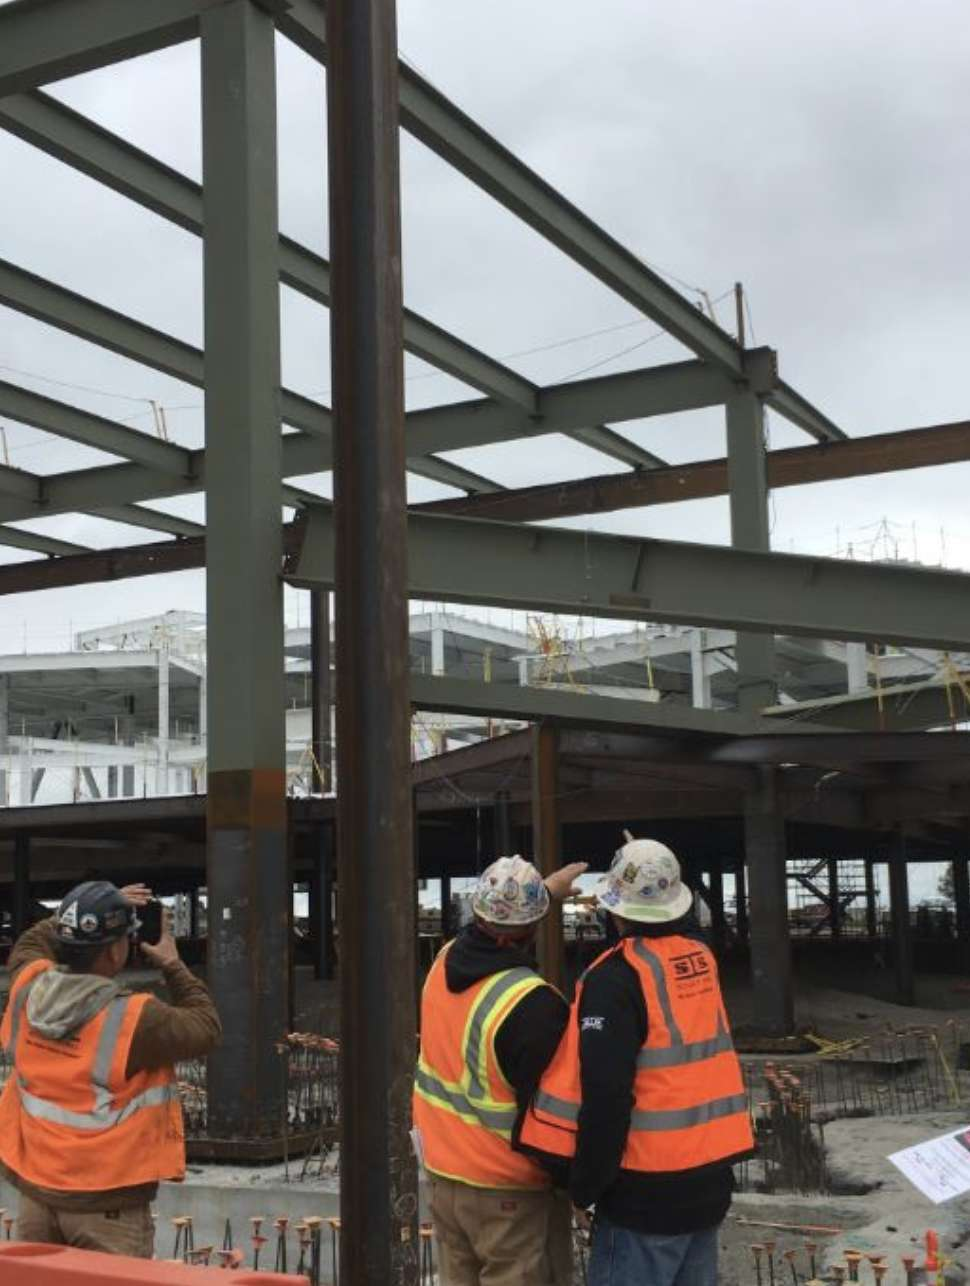 Part of the building under construction in the Menlo Park area collapsed on April 26. (Menlo Park Fire Department)